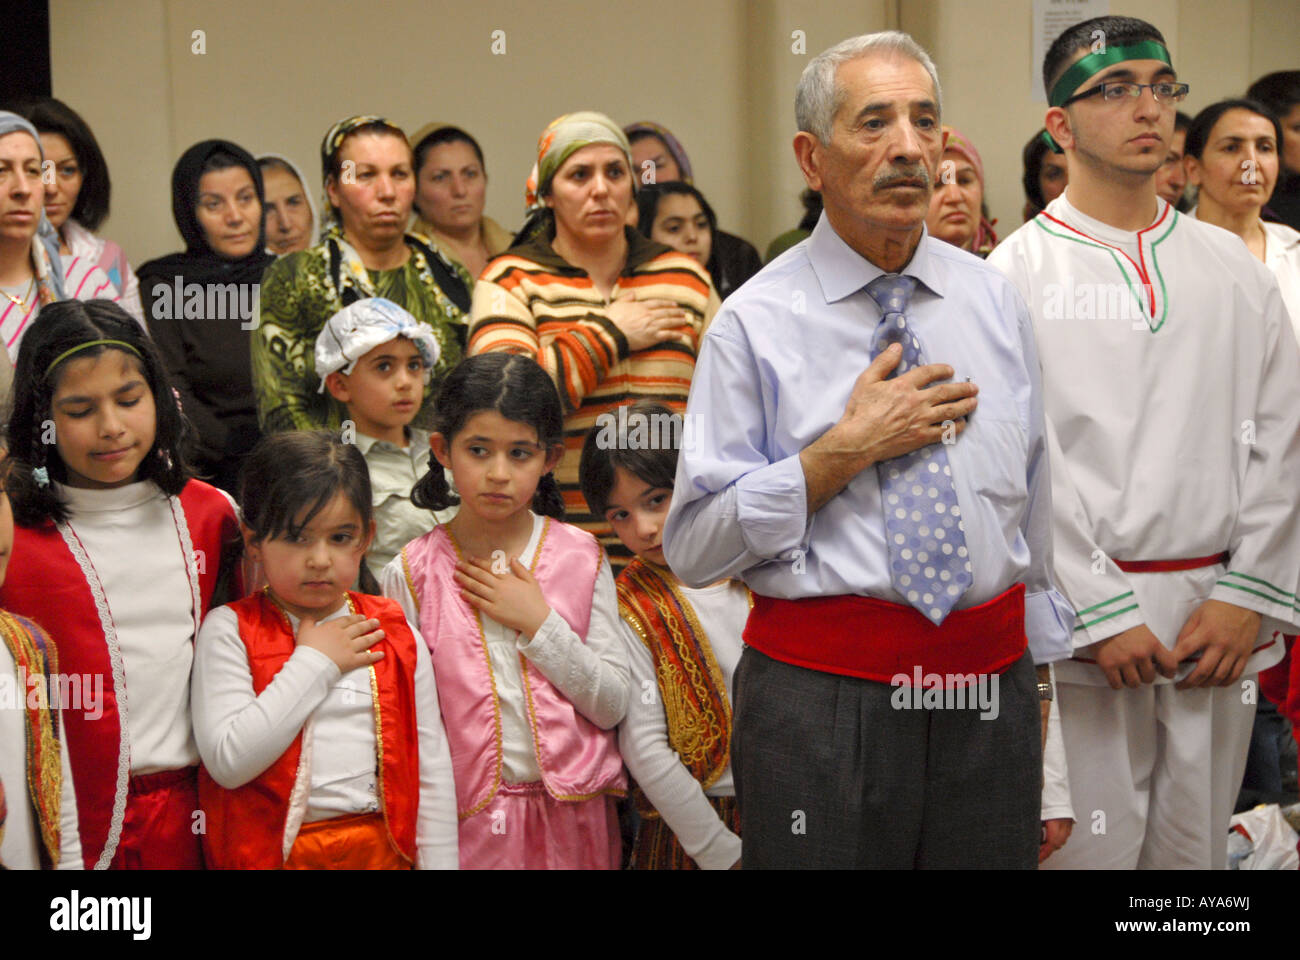 YOUNG AND OLD ETHNIC ALEVIS DURING THE 'SEMAH CEREMONY'IN NORTH LONDON ALEVI CULTURAL CENTER - Stock Image